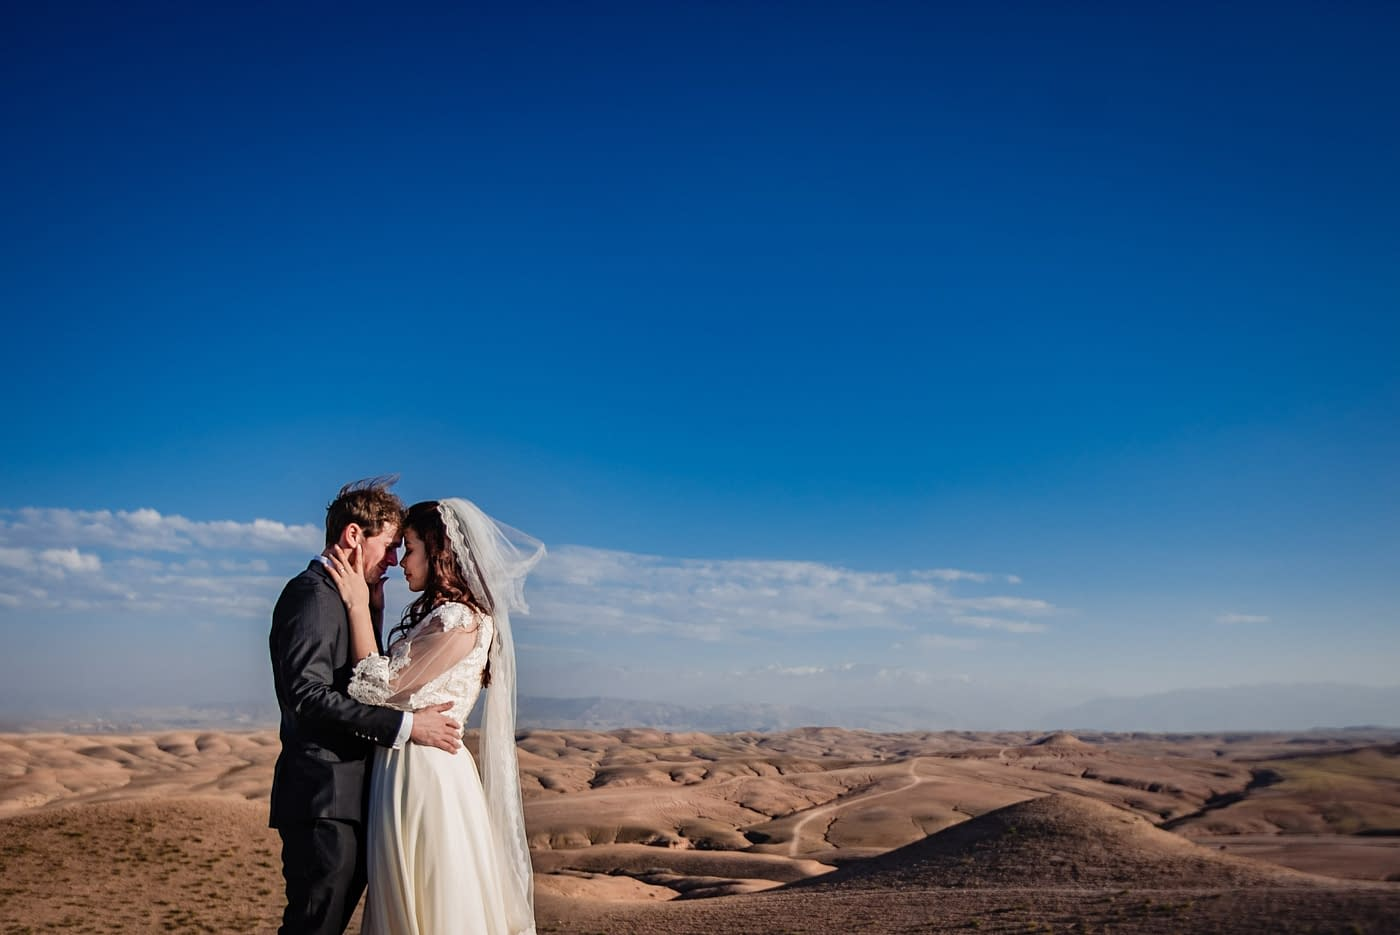 Beautiful Destination Wedding photography in Agafay Desert